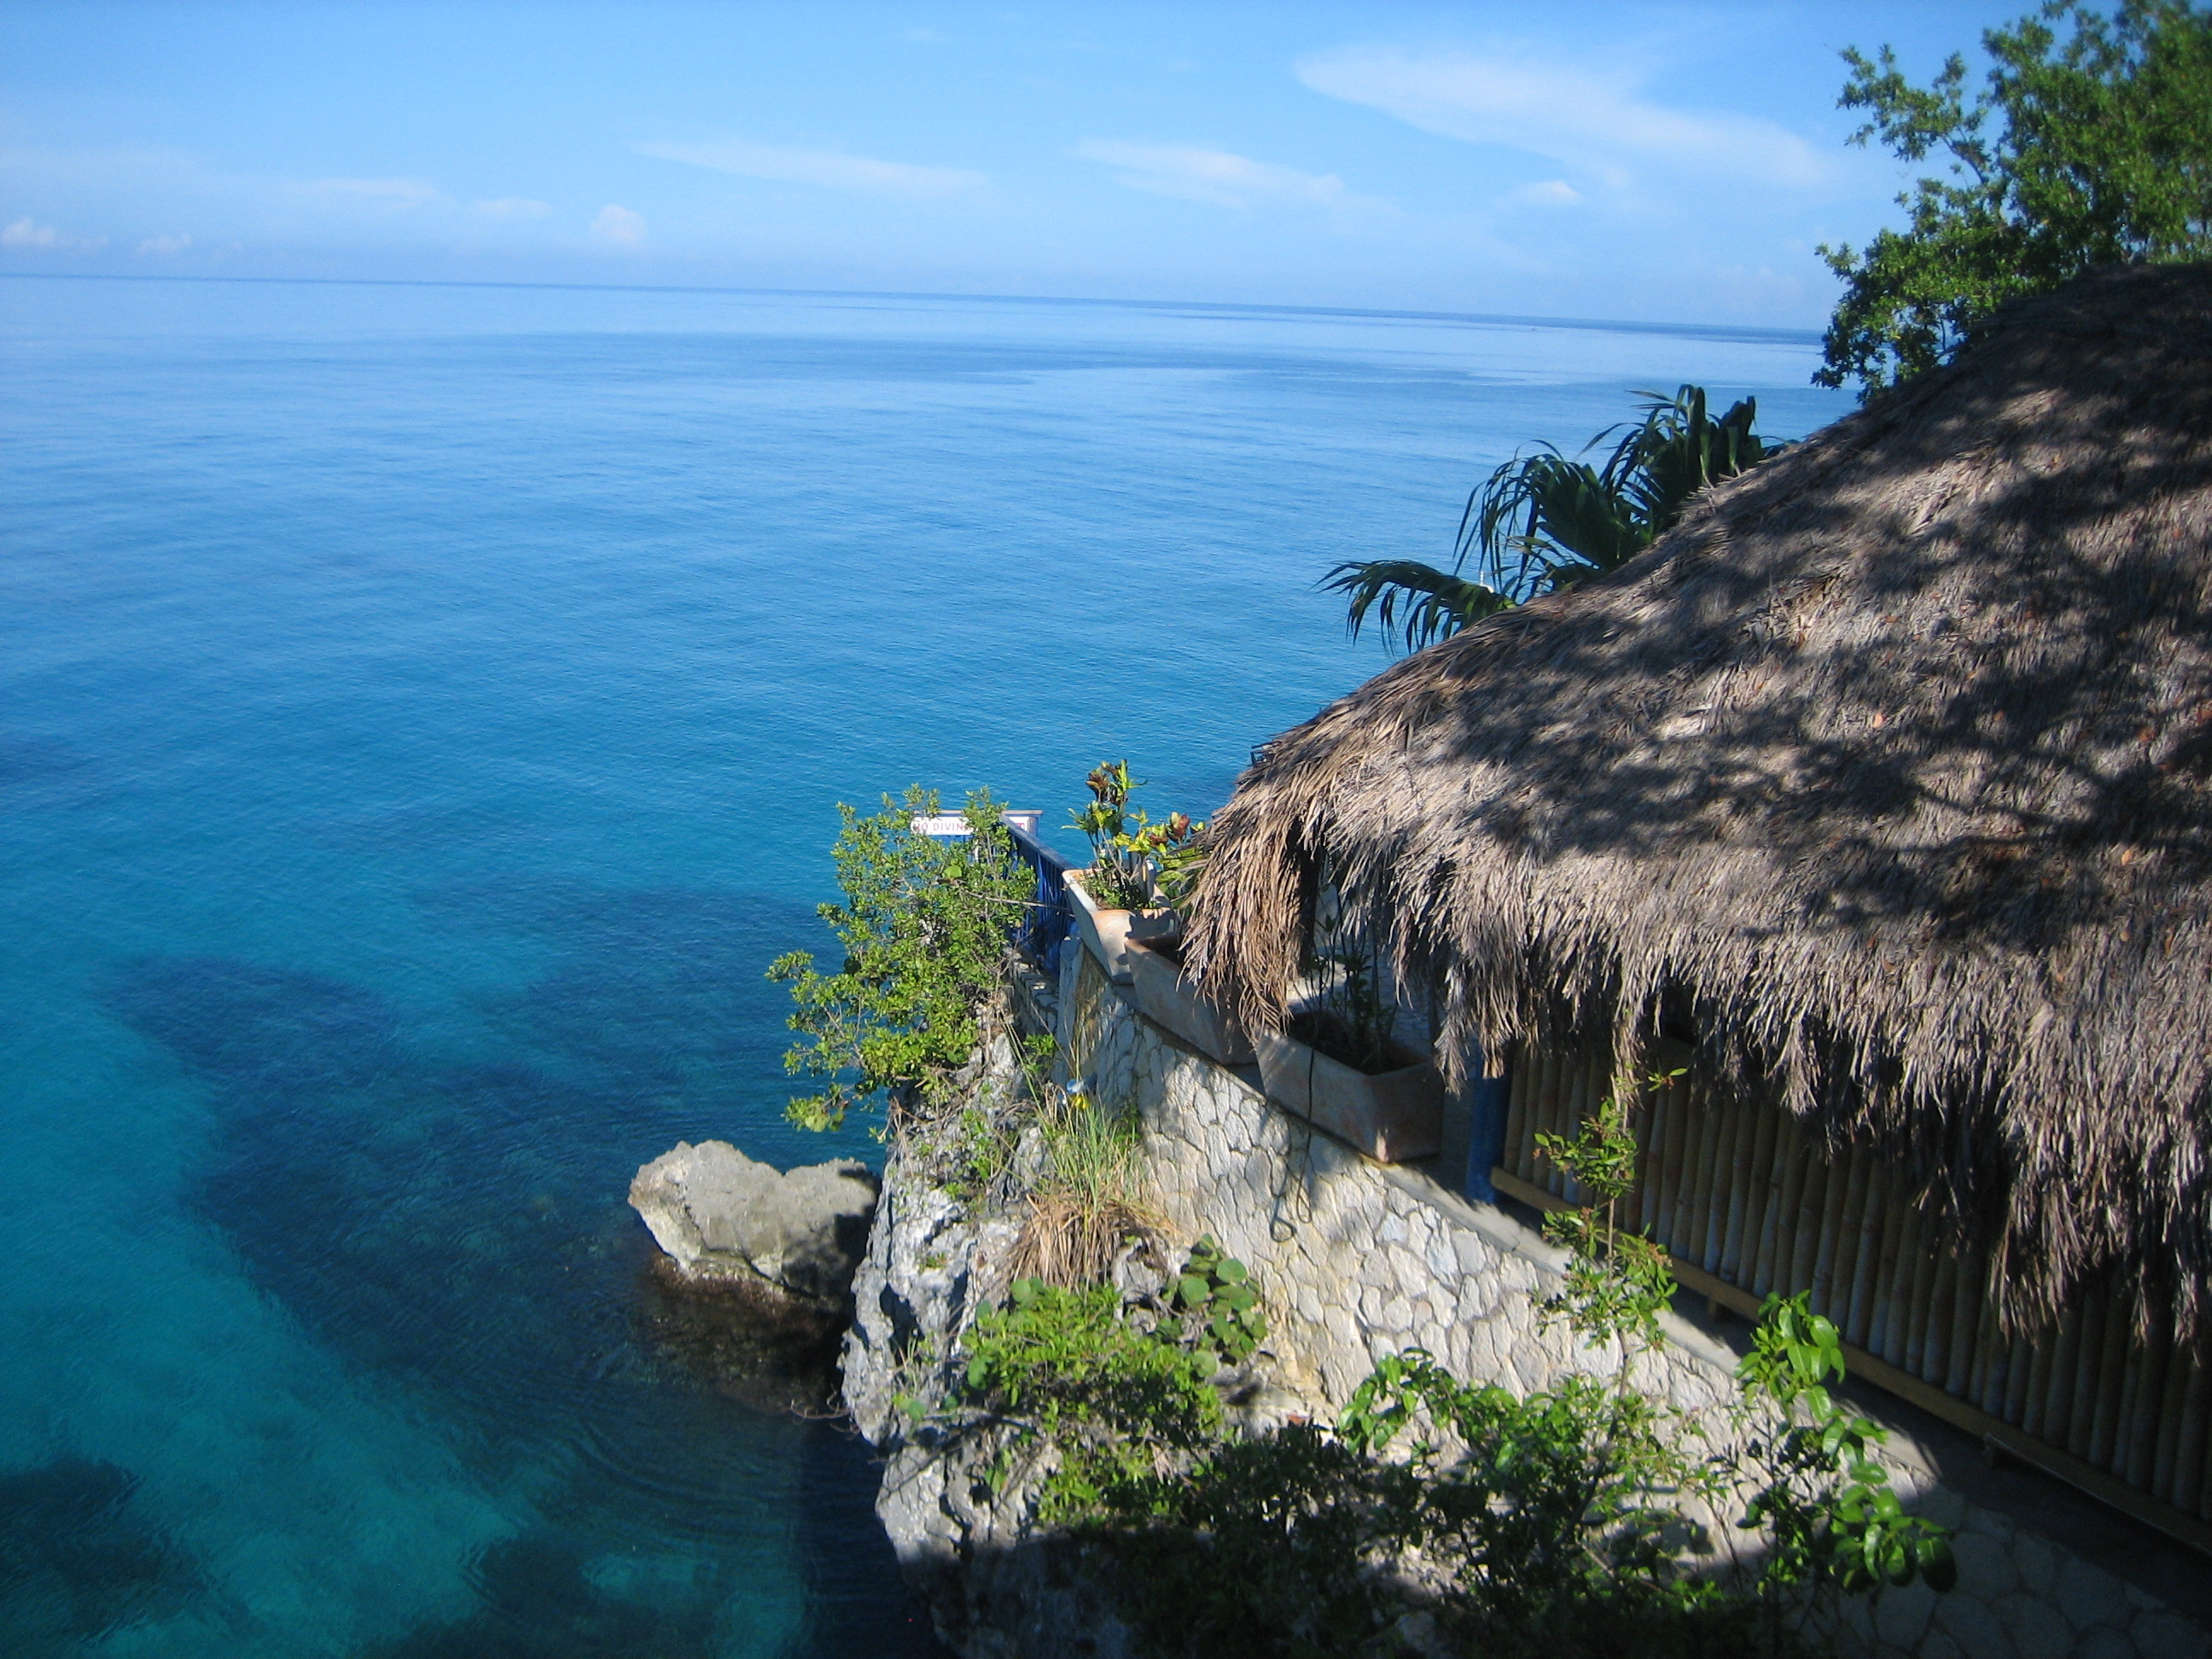 The Caves at Negril - West End, Jamaica